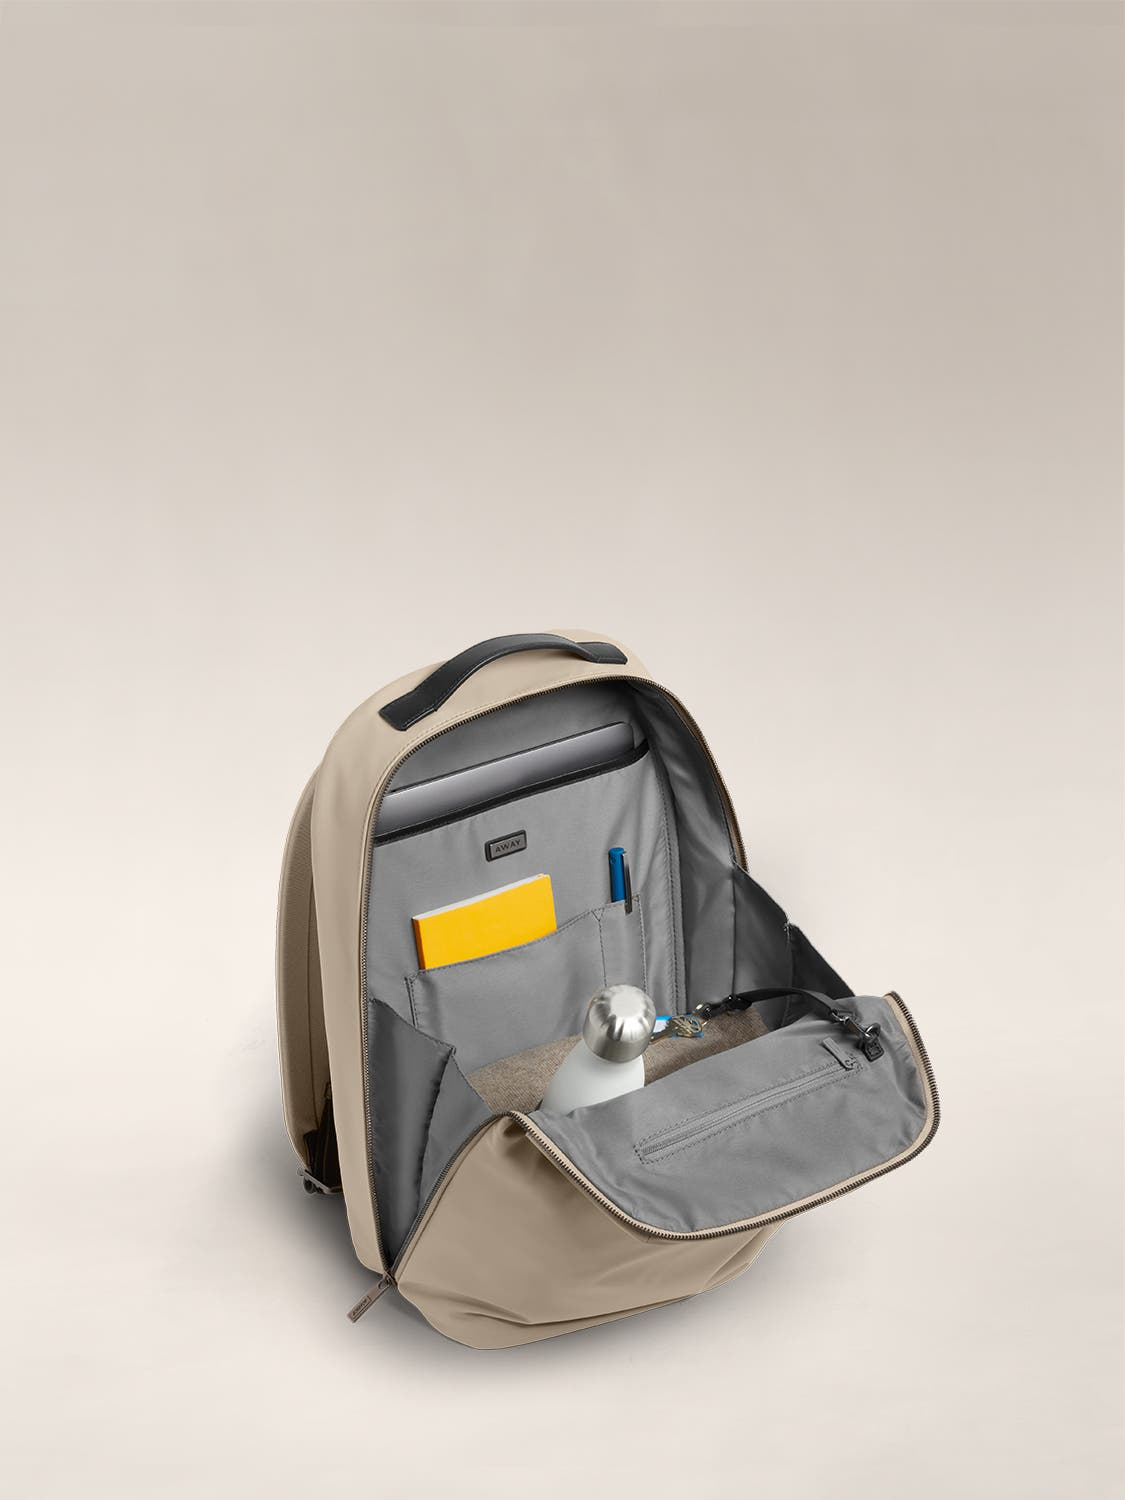 Open view  of a sand flap backpack with organized pockets shown with a yellow notebook, white water bottle, and a set of keys.